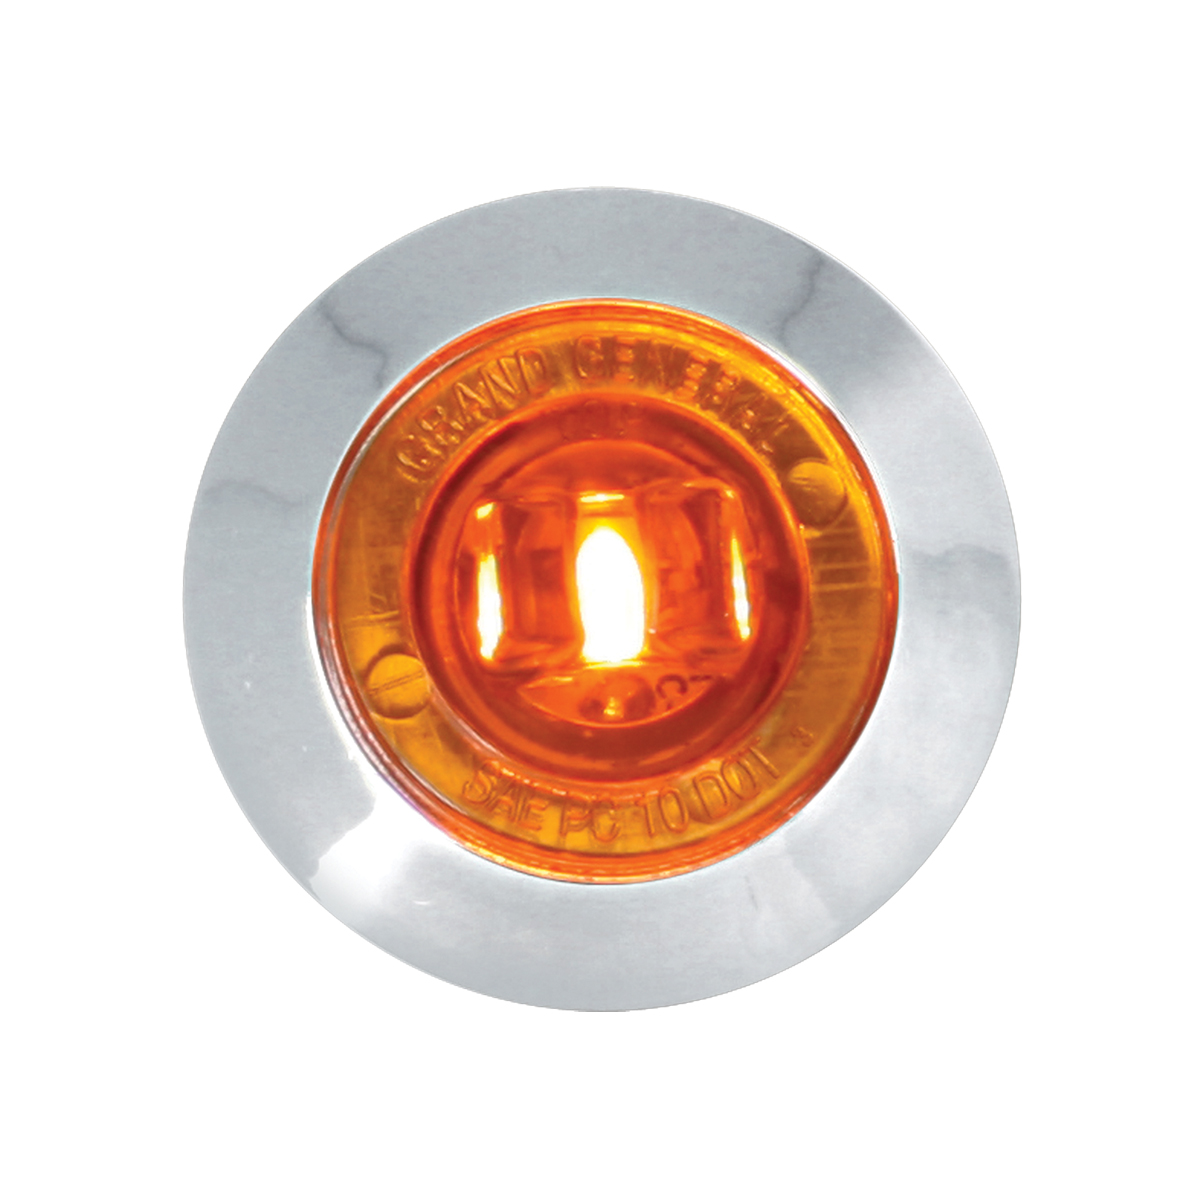 """75220 1-1/4"""" Dia. Dual Function LED Light with Chrome Plastic Bezel and Nut"""